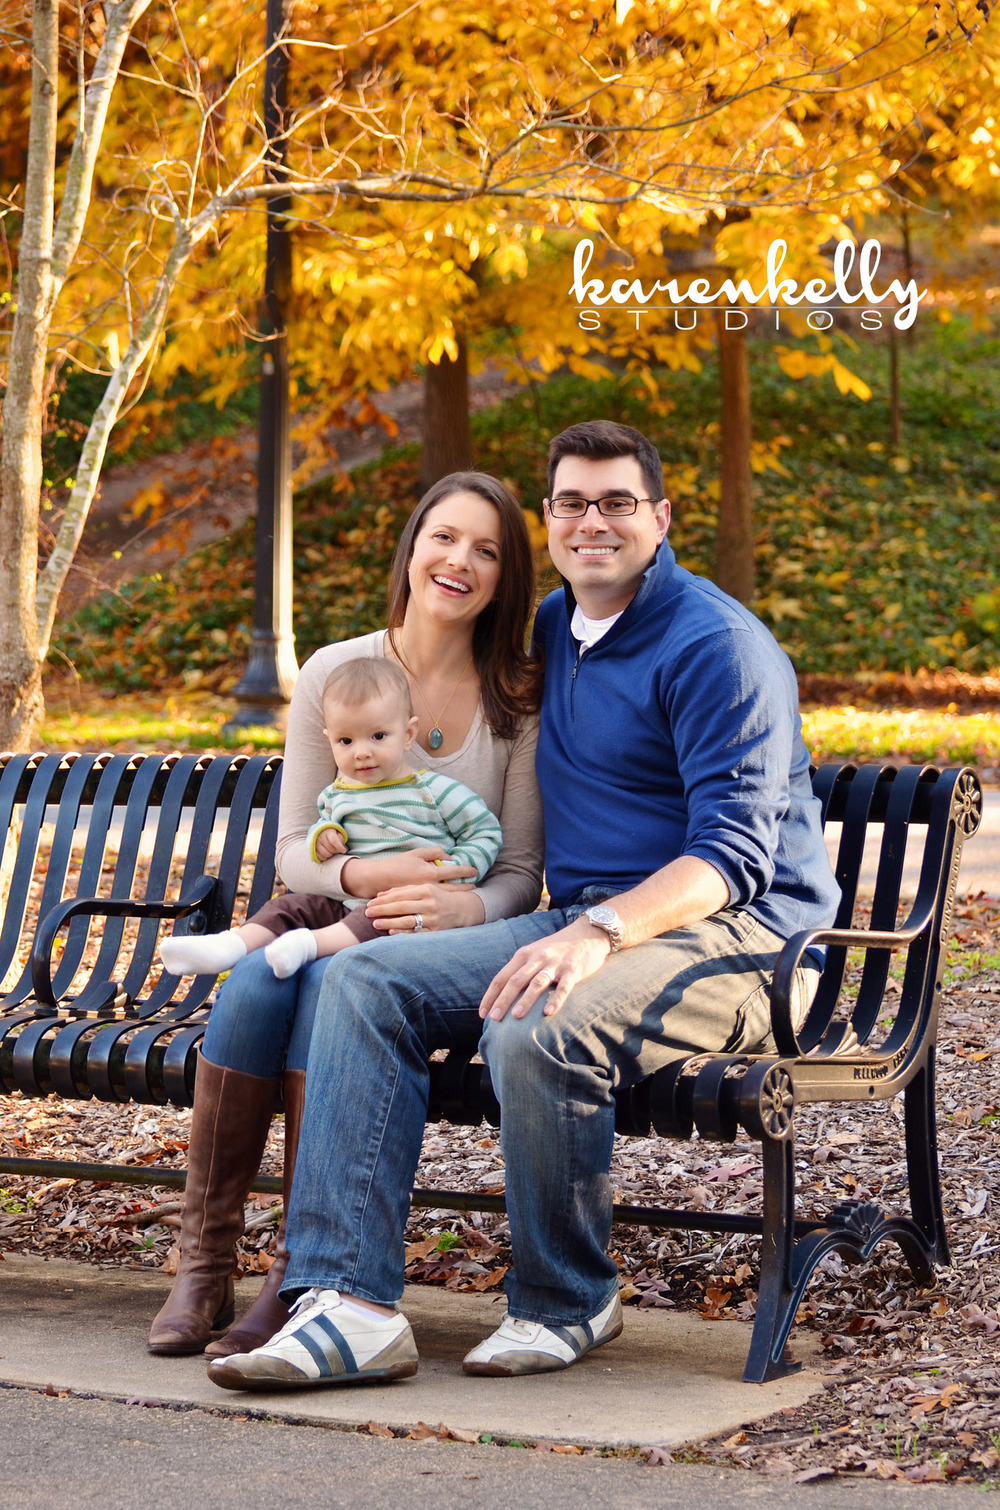 karen kelly studios - fox family mini session4fb.jpg